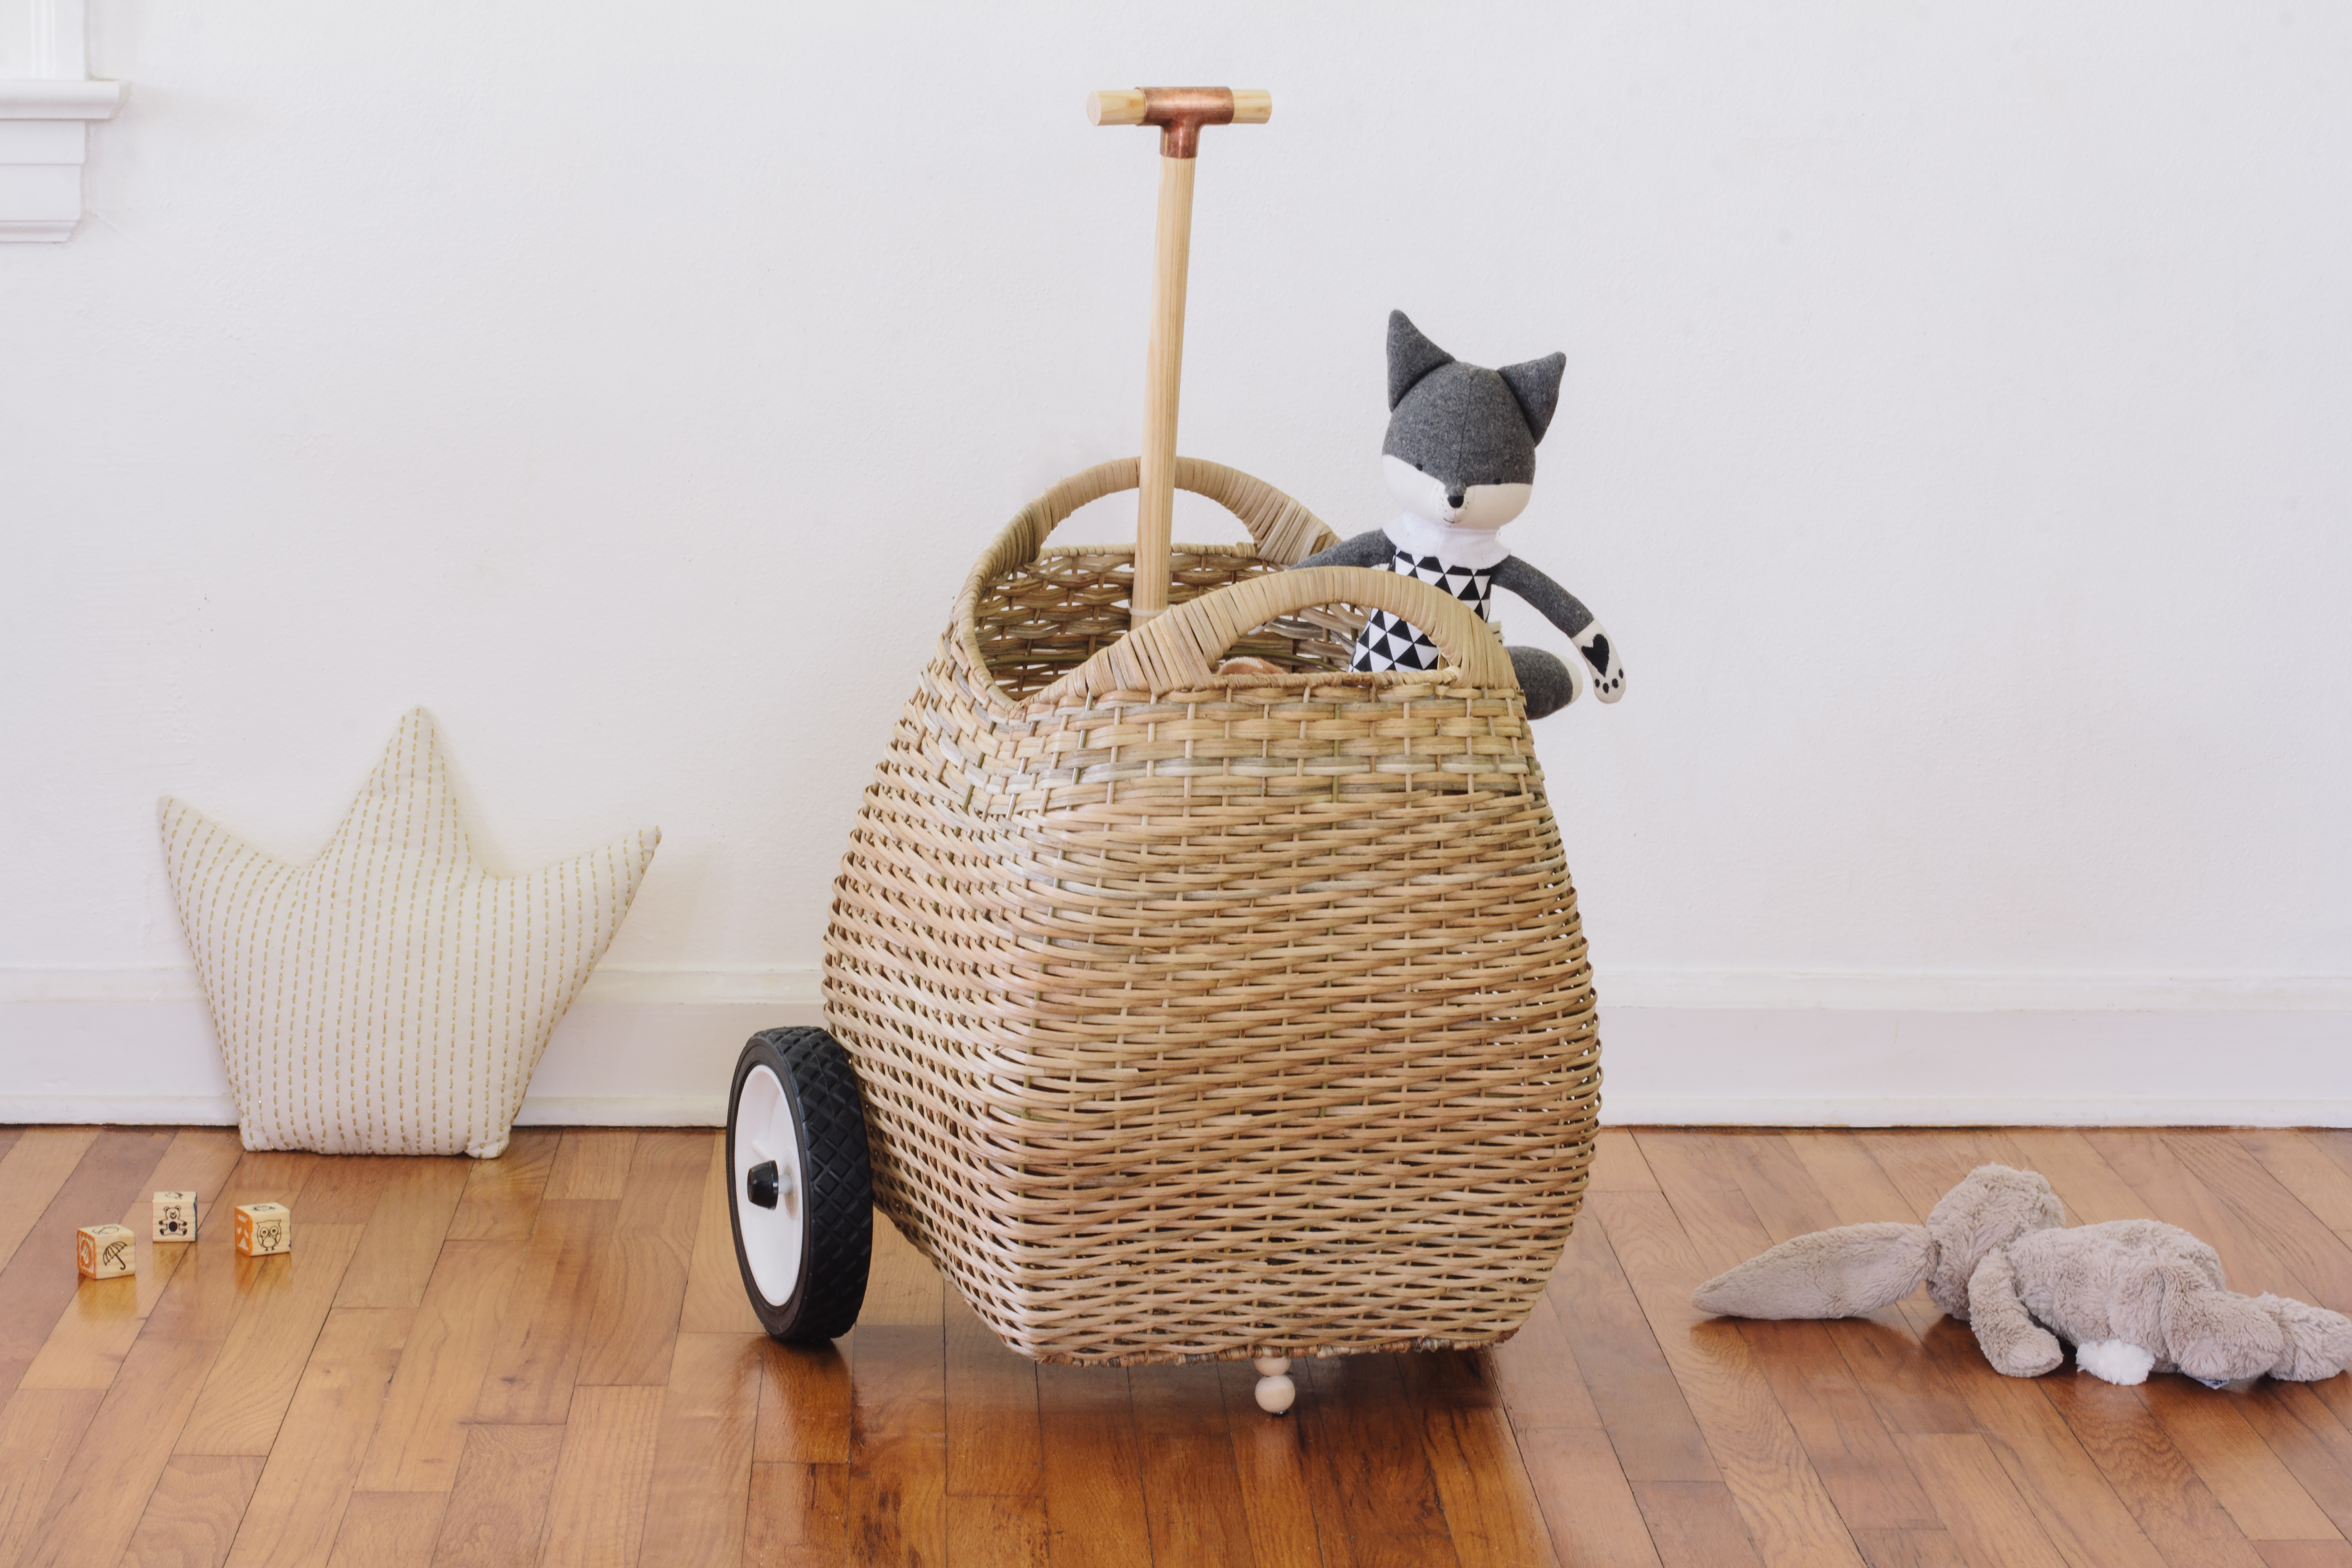 Turn Any Basket Into an Adorable Toy Trolley for Kids With This Easy Tutorial